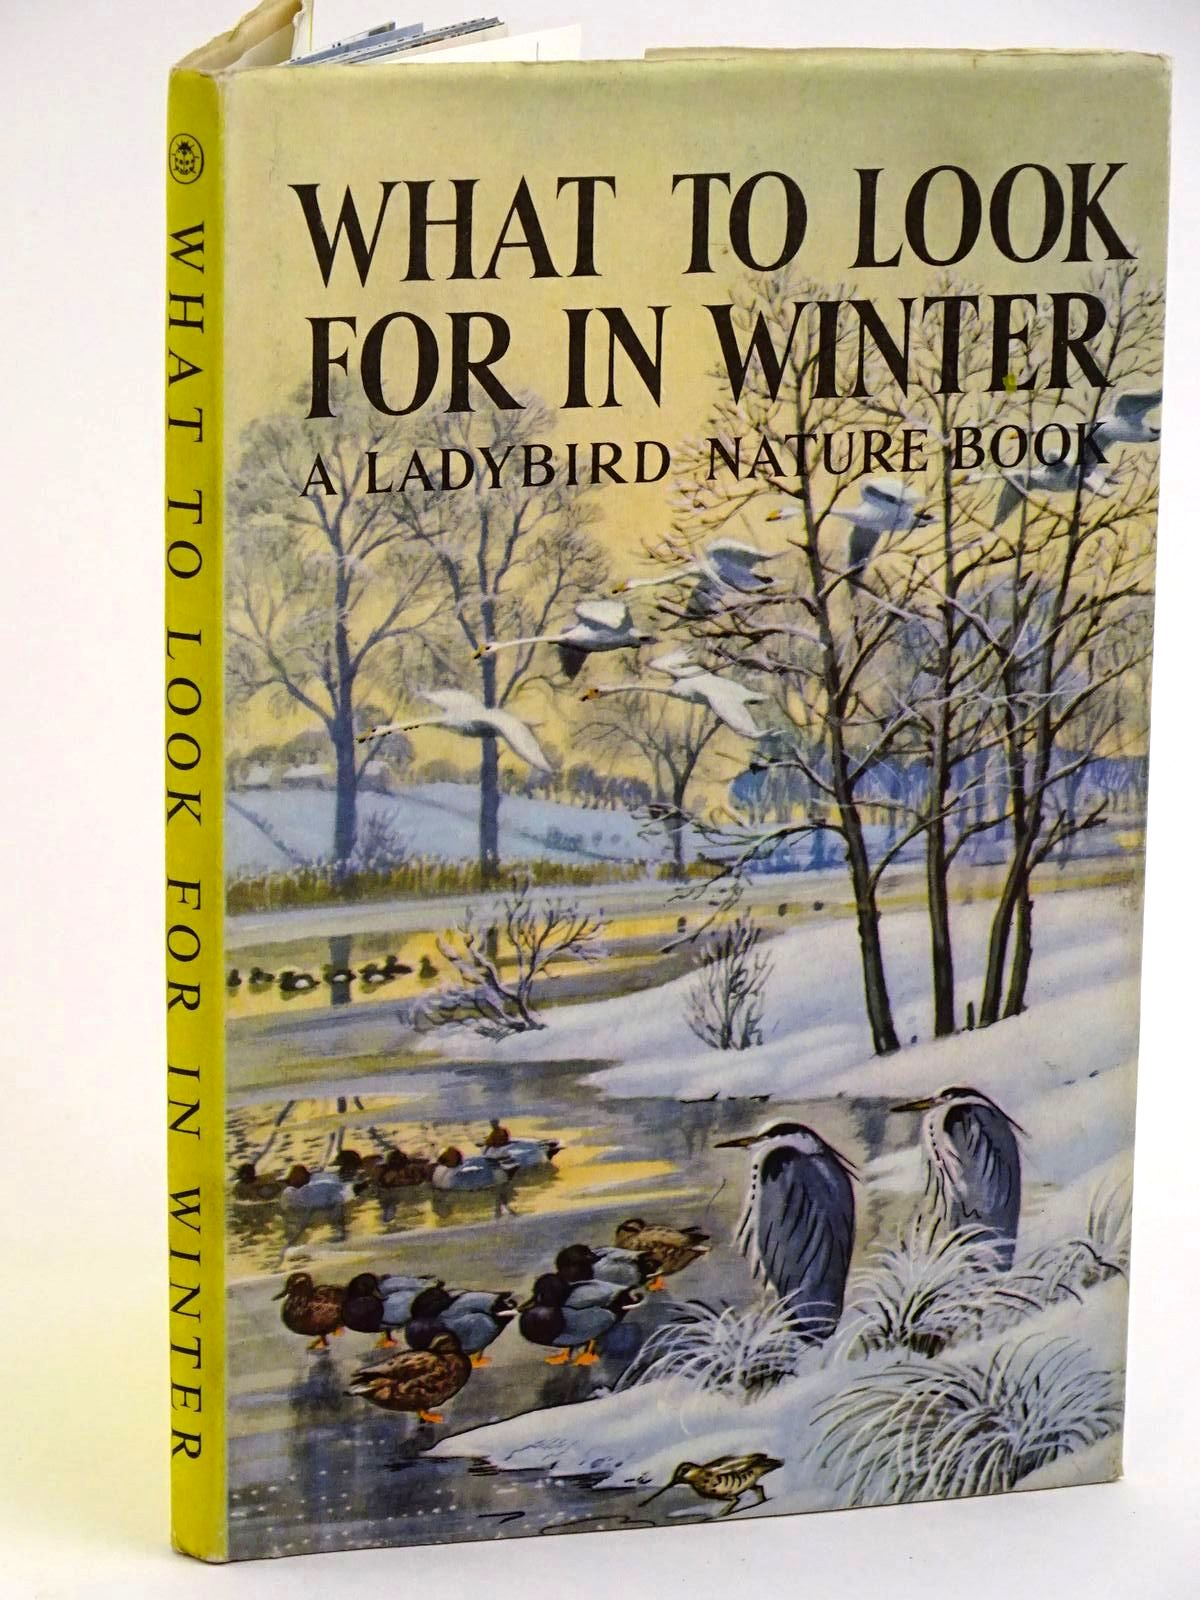 Photo of WHAT TO LOOK FOR IN WINTER written by Watson, E.L. Grant illustrated by Tunnicliffe, C.F. published by Wills & Hepworth Ltd. (STOCK CODE: 1318144)  for sale by Stella & Rose's Books